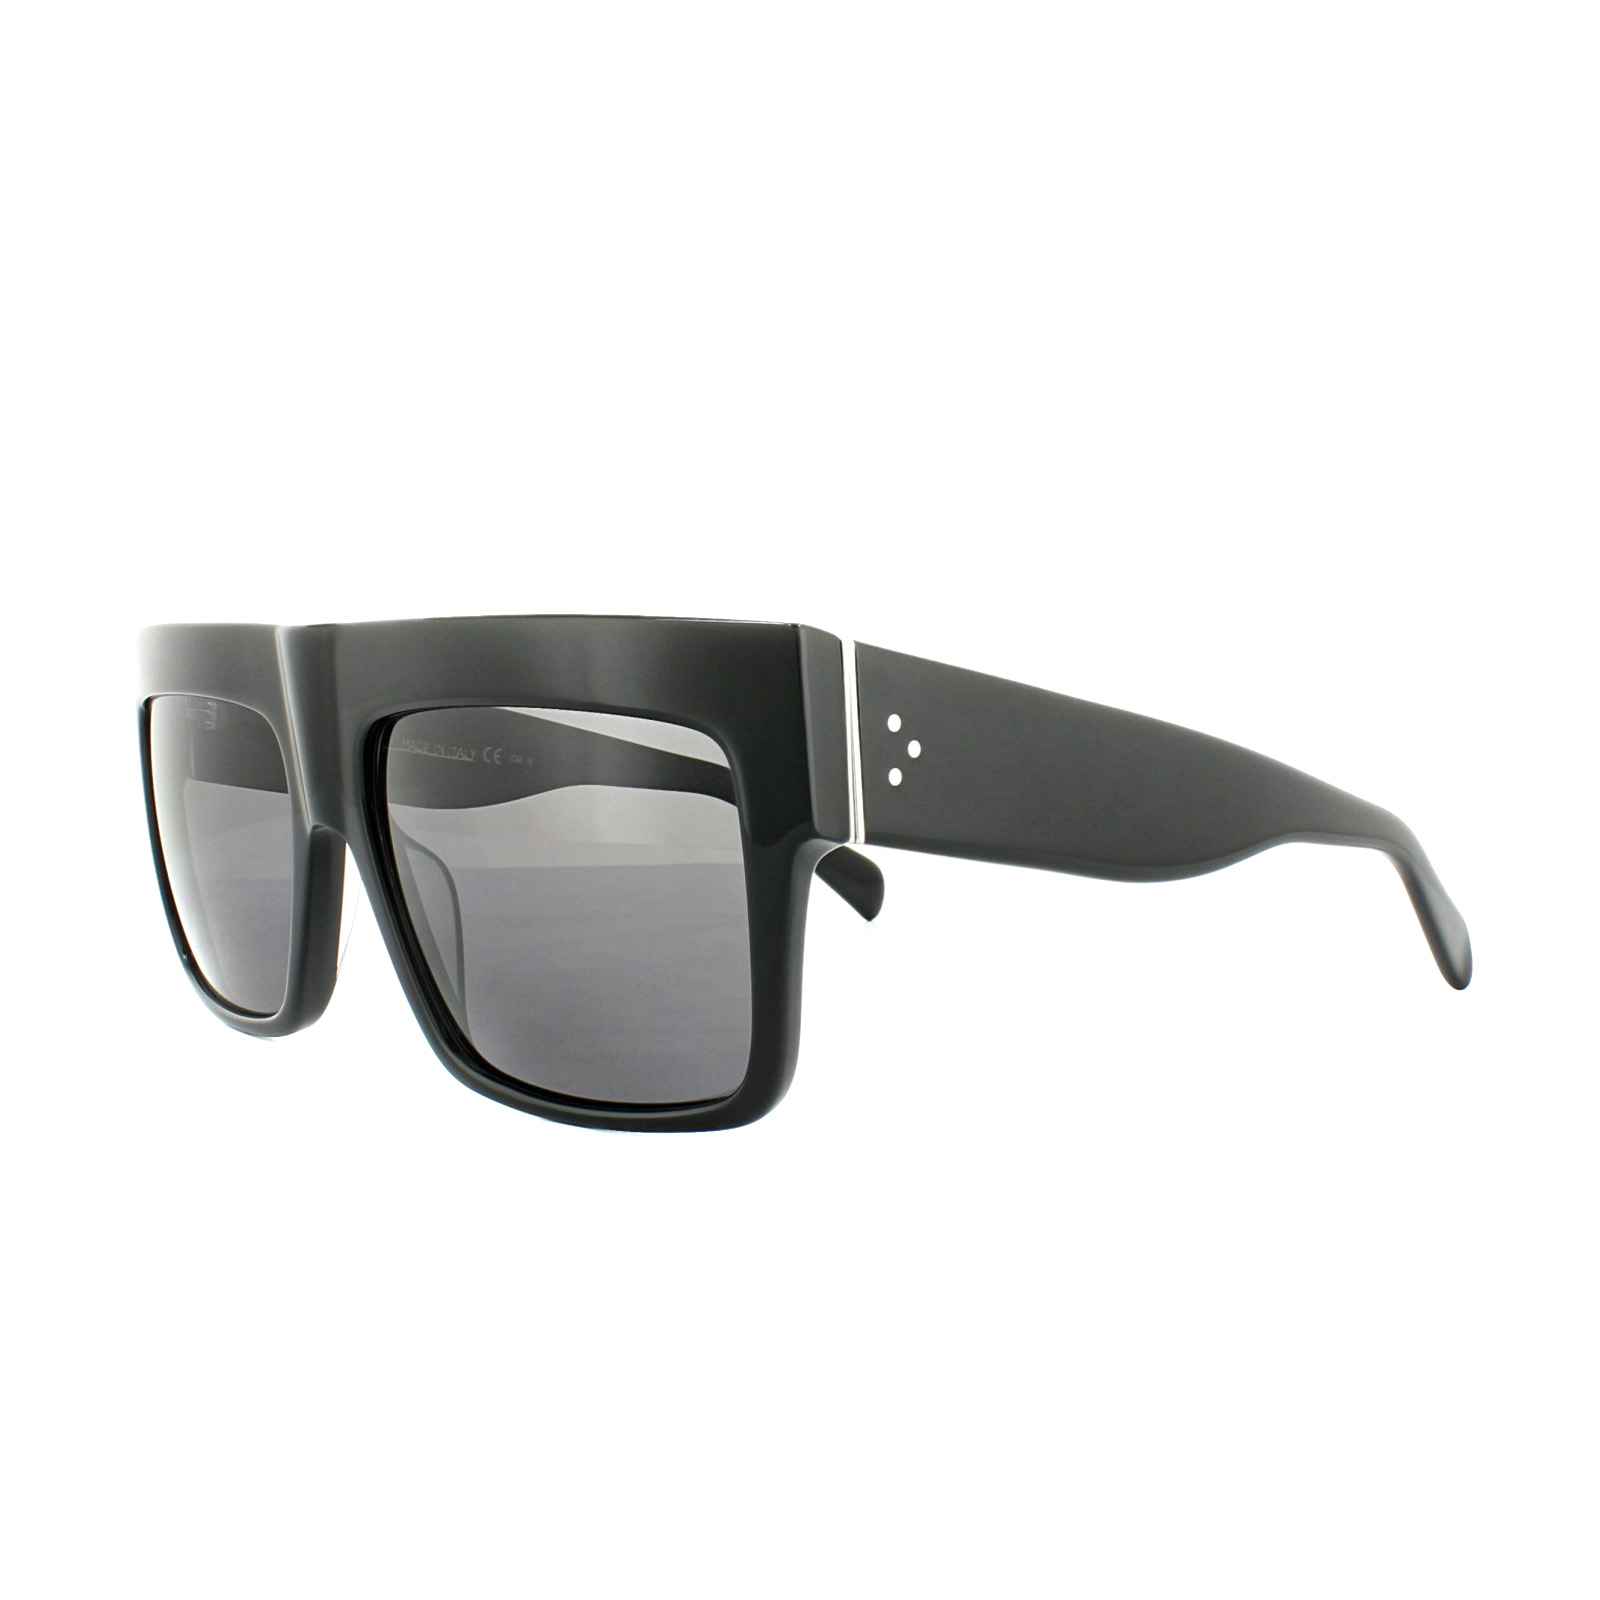 a35a669302e1 Sentinel Celine Sunglasses 41756 S ZZ Top 807 3H Black Grey Polarized Kim  Kardashian